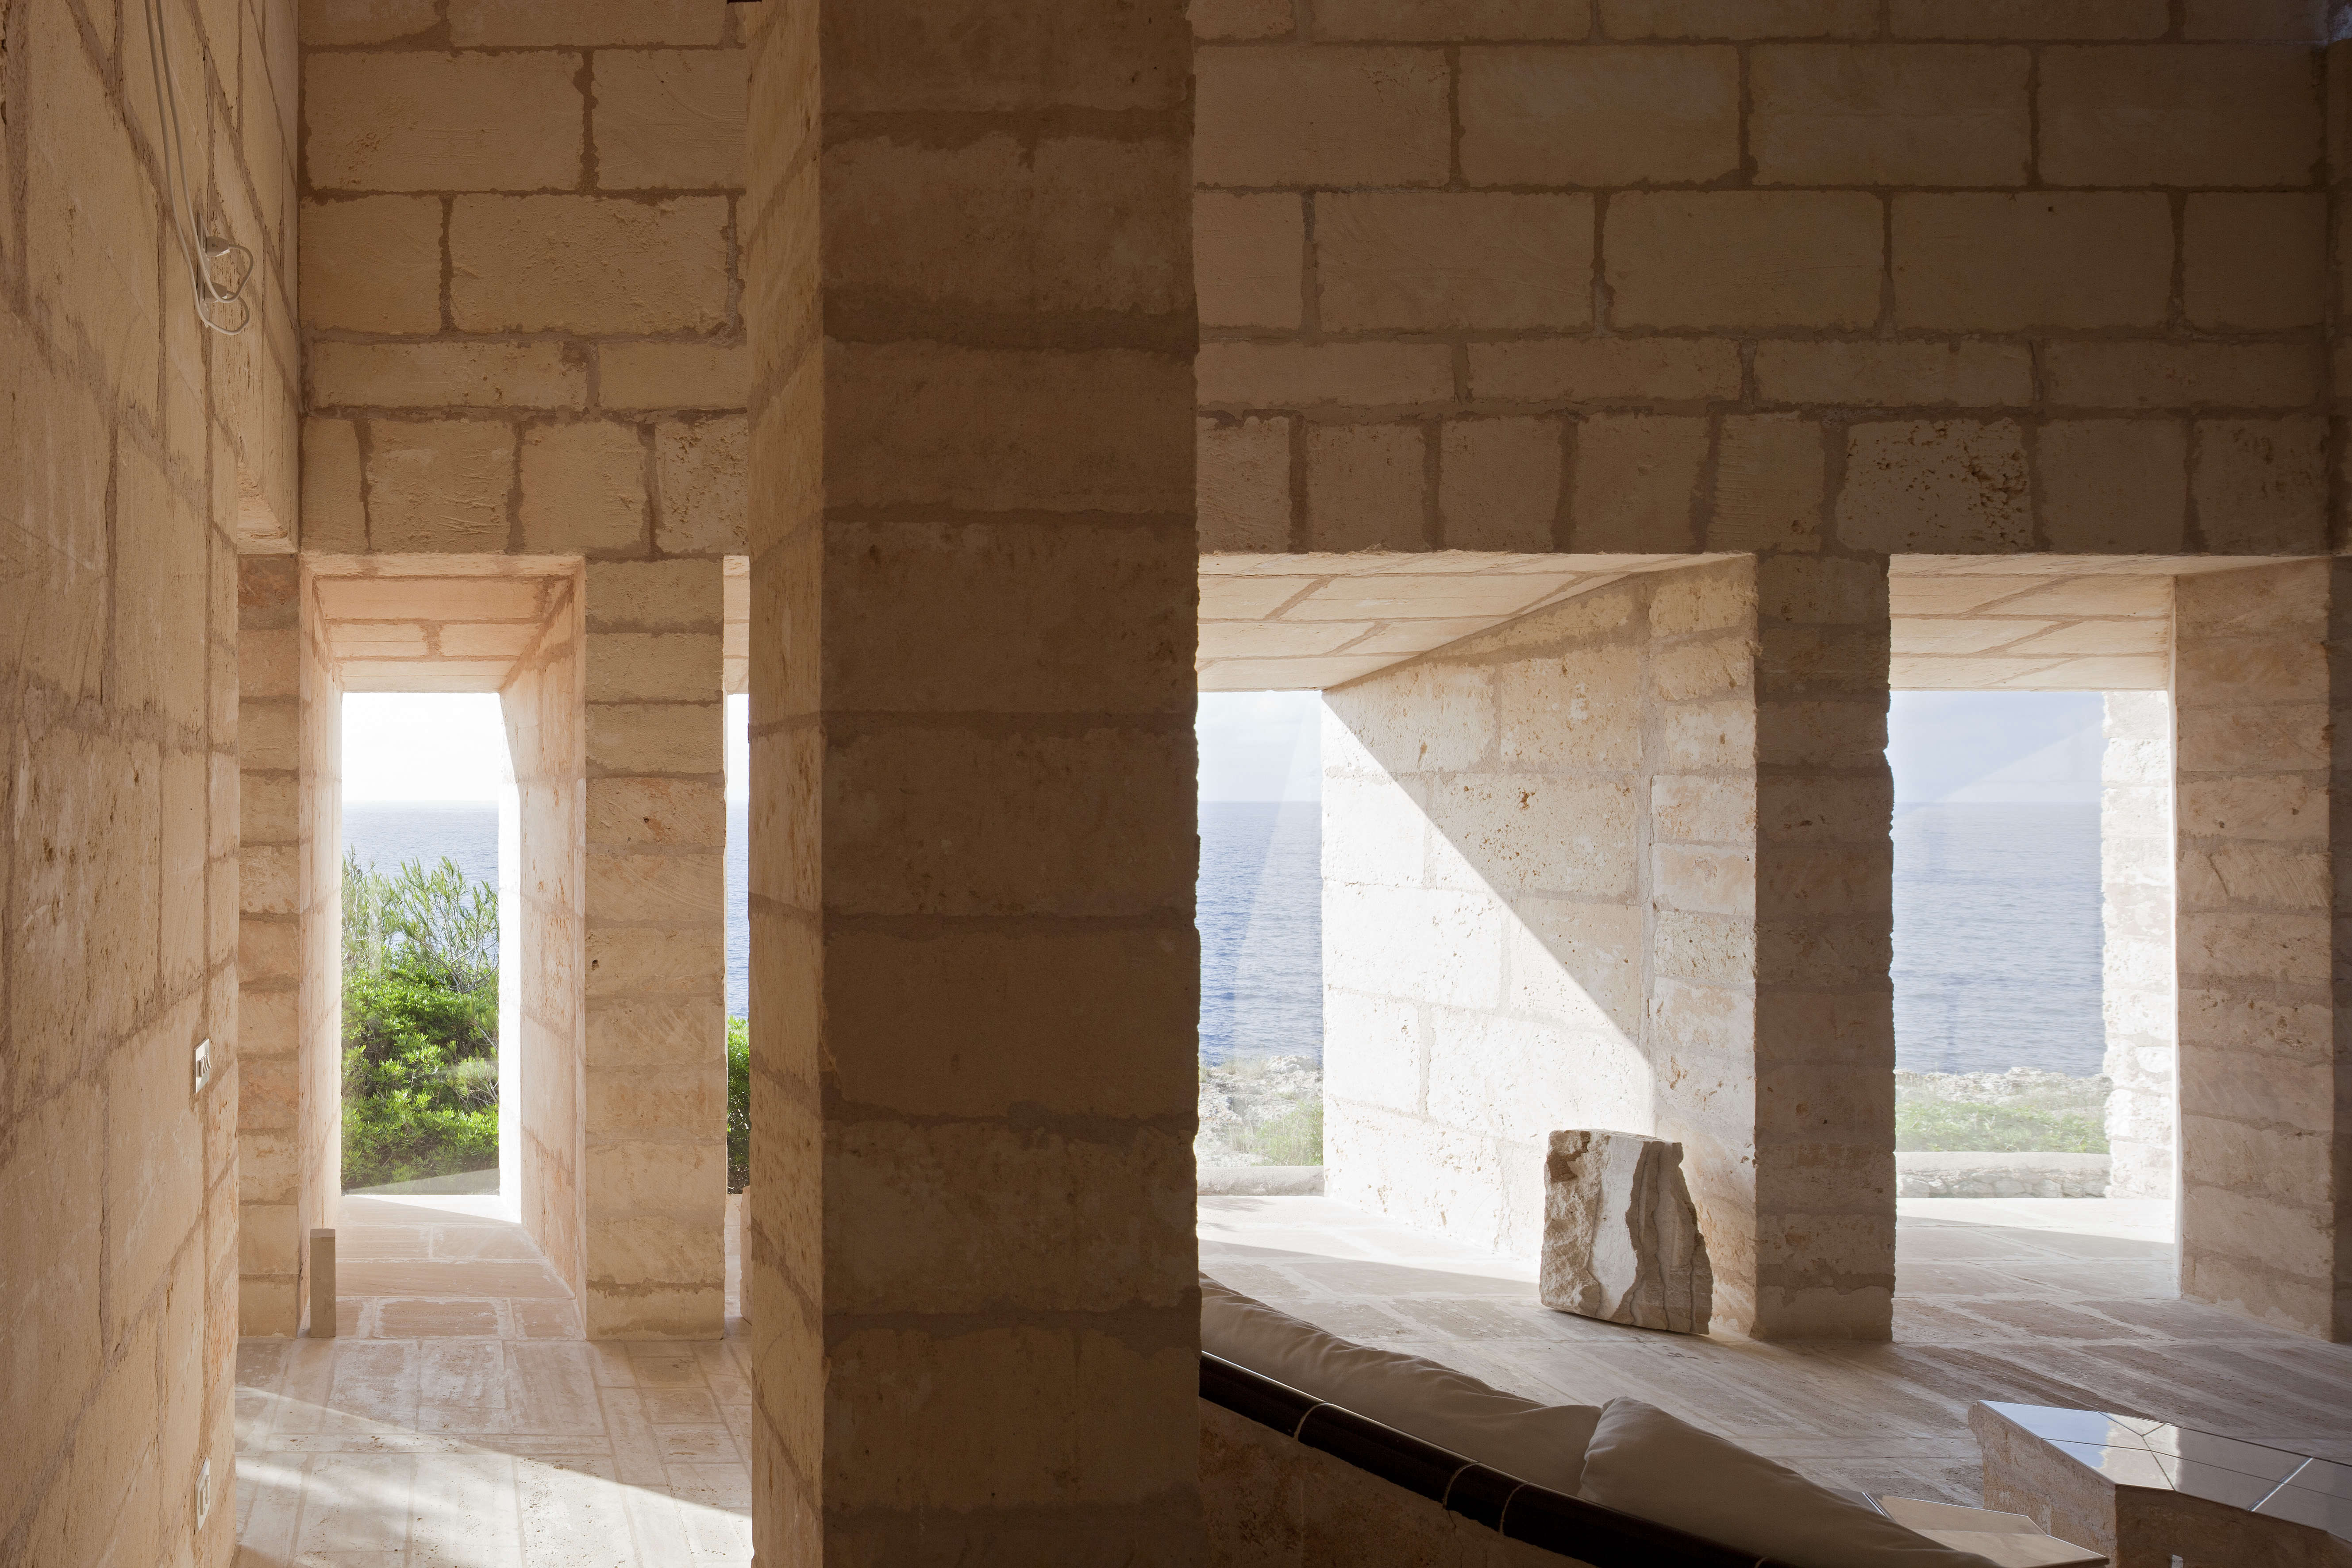 The monumental spaces create a mise-en-scène framing the sea, trees, and sky.